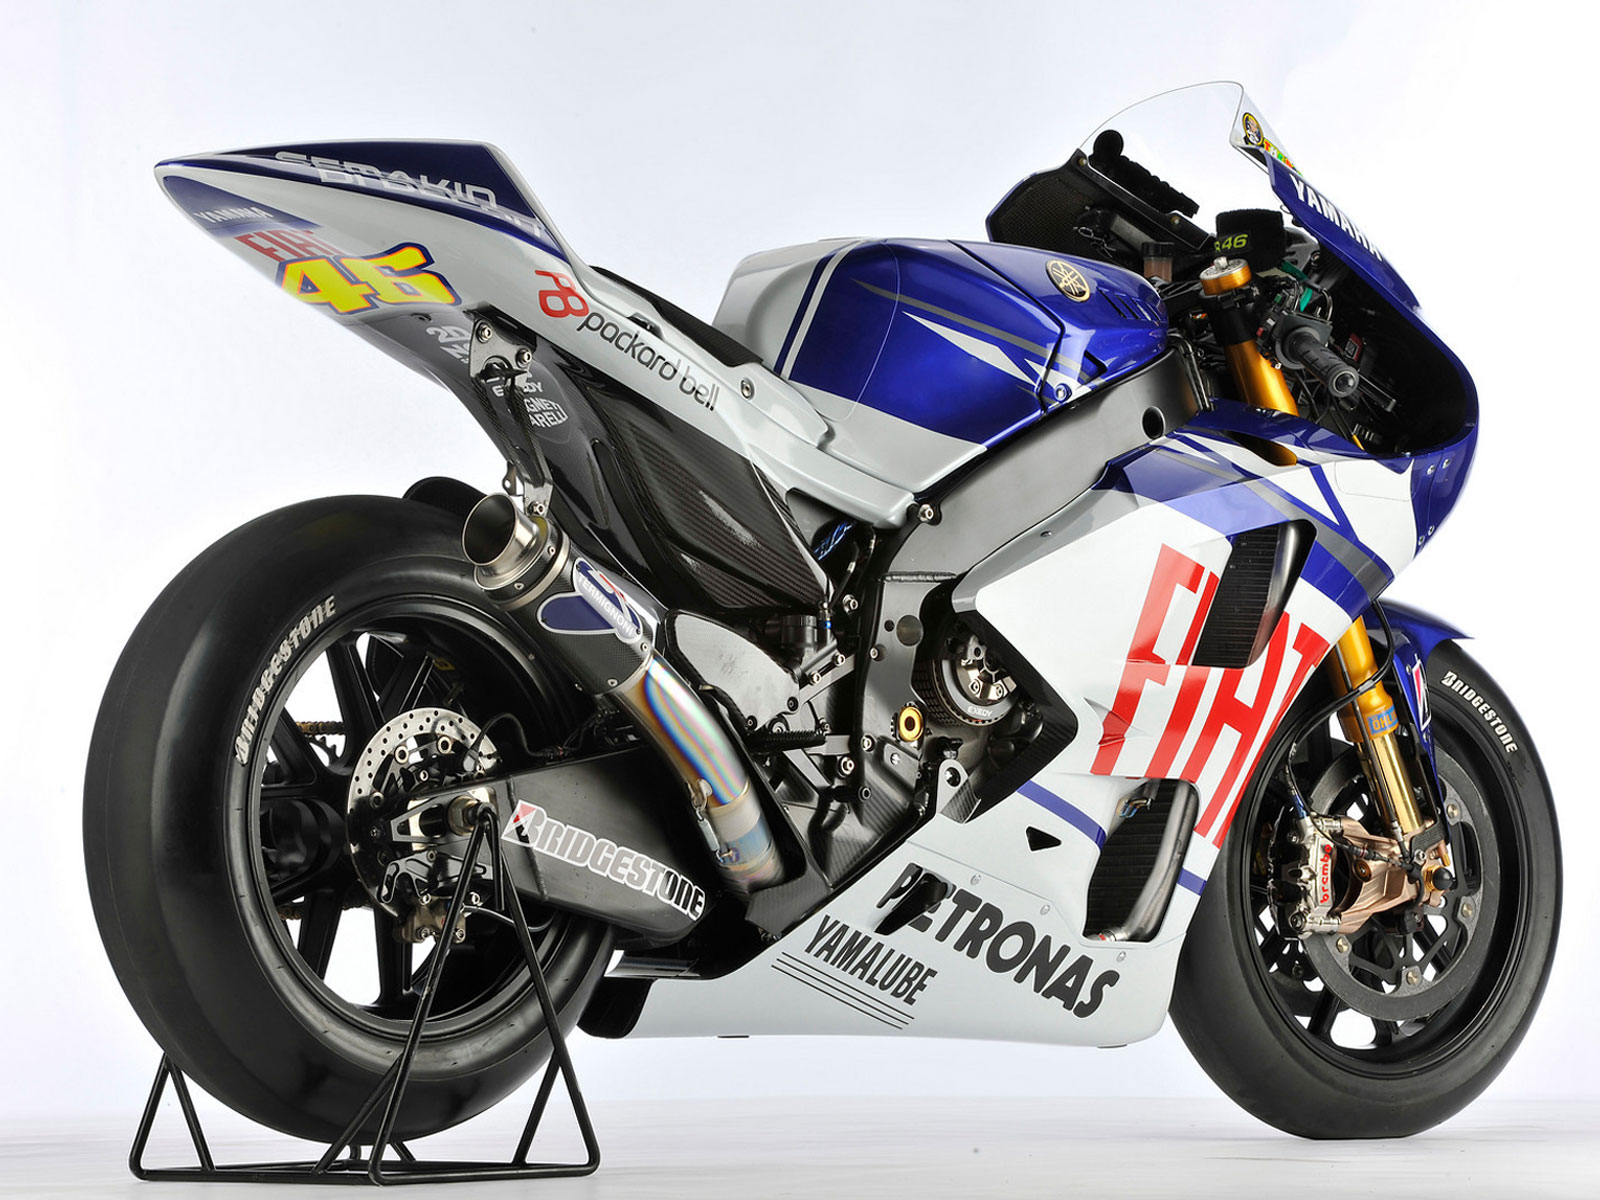 yamaha yzr-m1 wallpapers